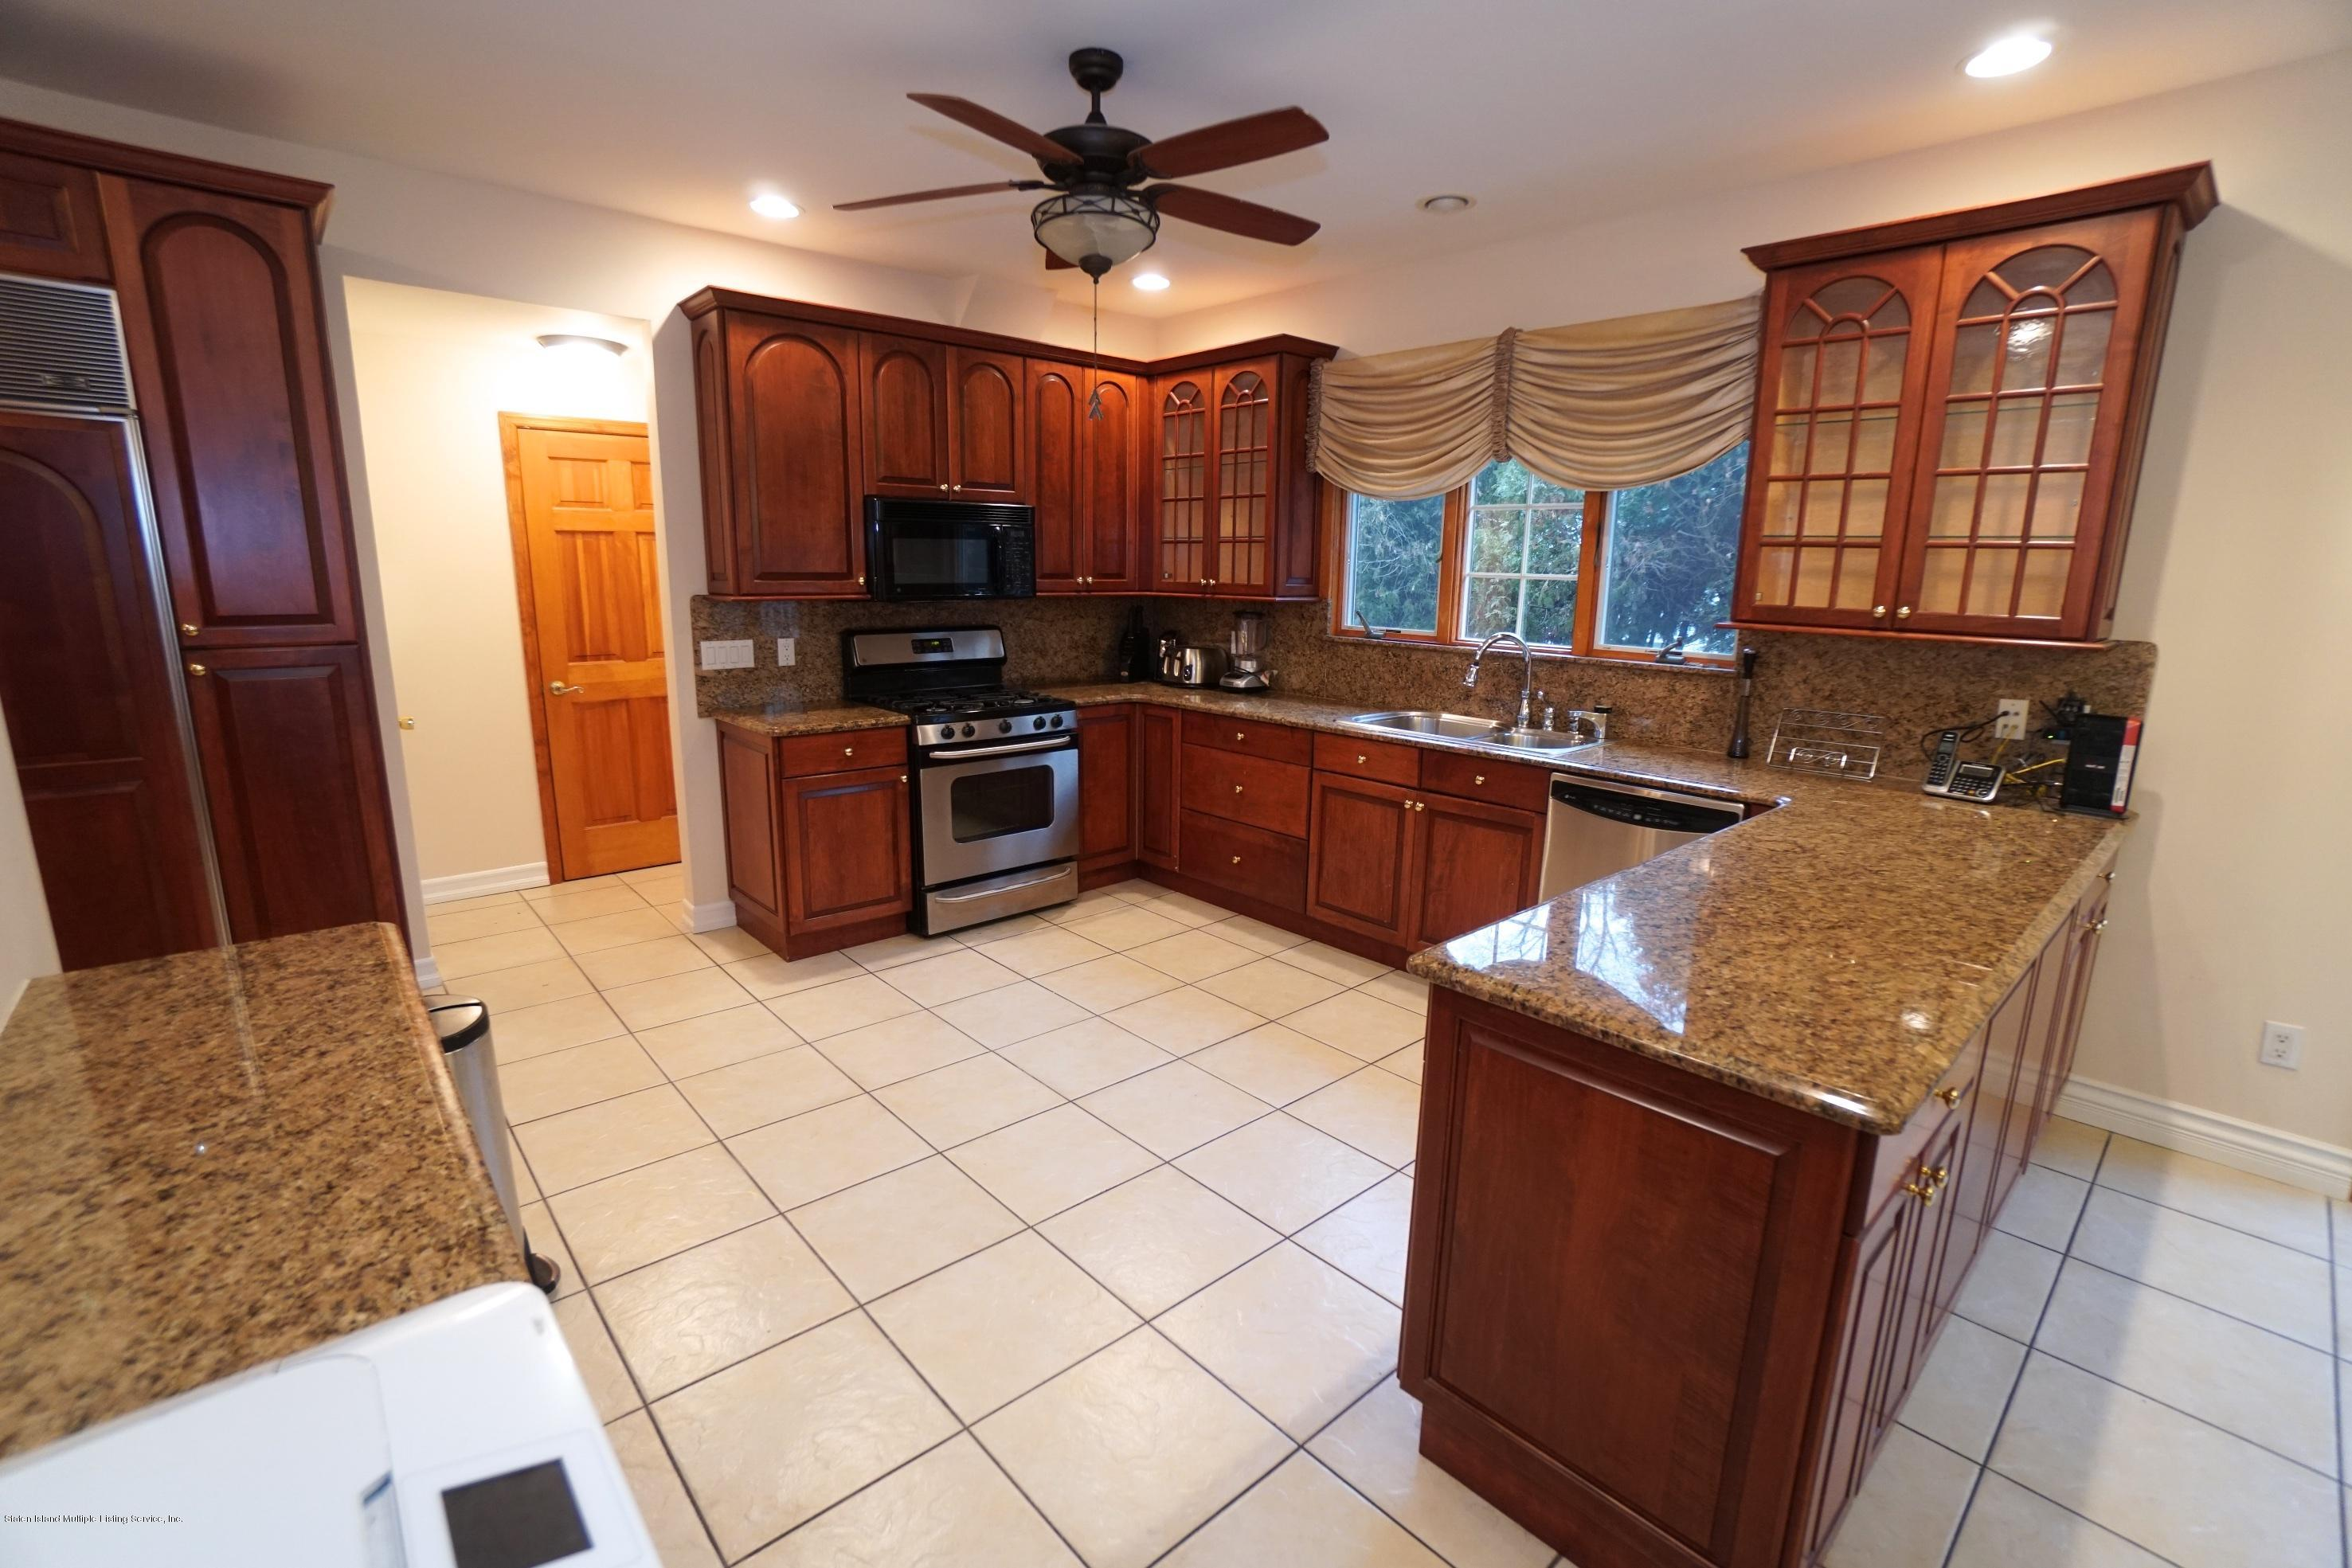 Single Family - Detached 120 Romer Road  Staten Island, NY 10304, MLS-1125309-10